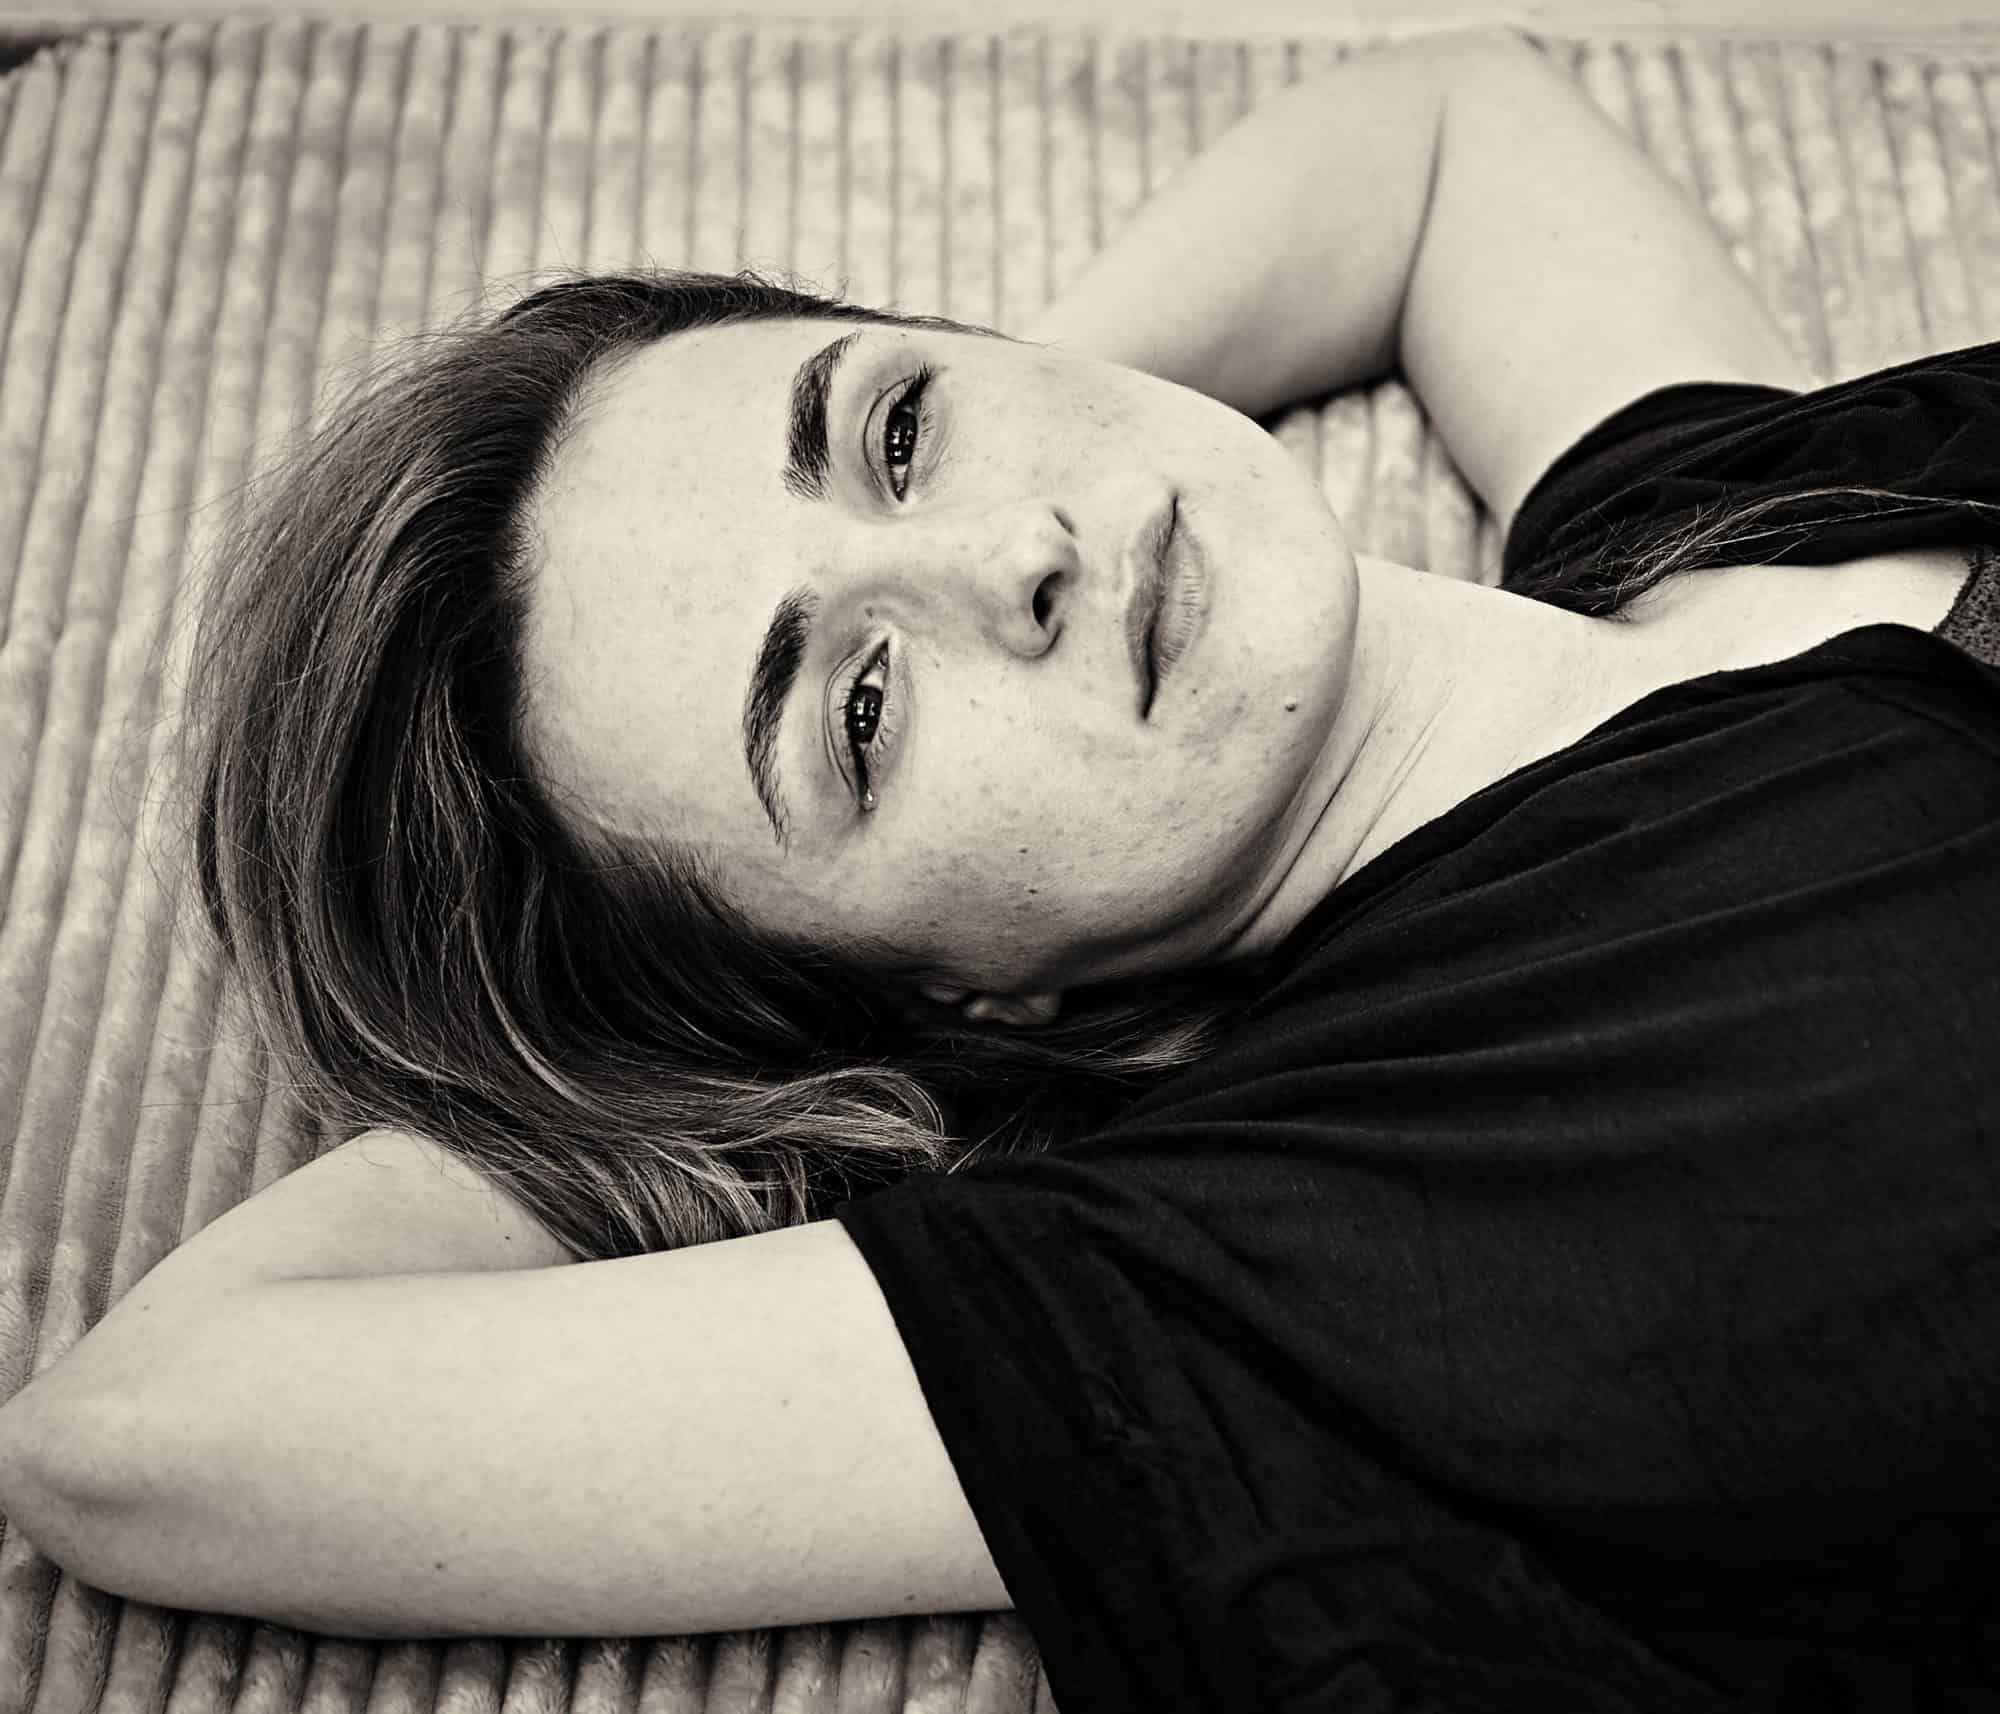 """Black and white intimate portrait of performer lying down. Tear in her eye, looking thoughtful."""